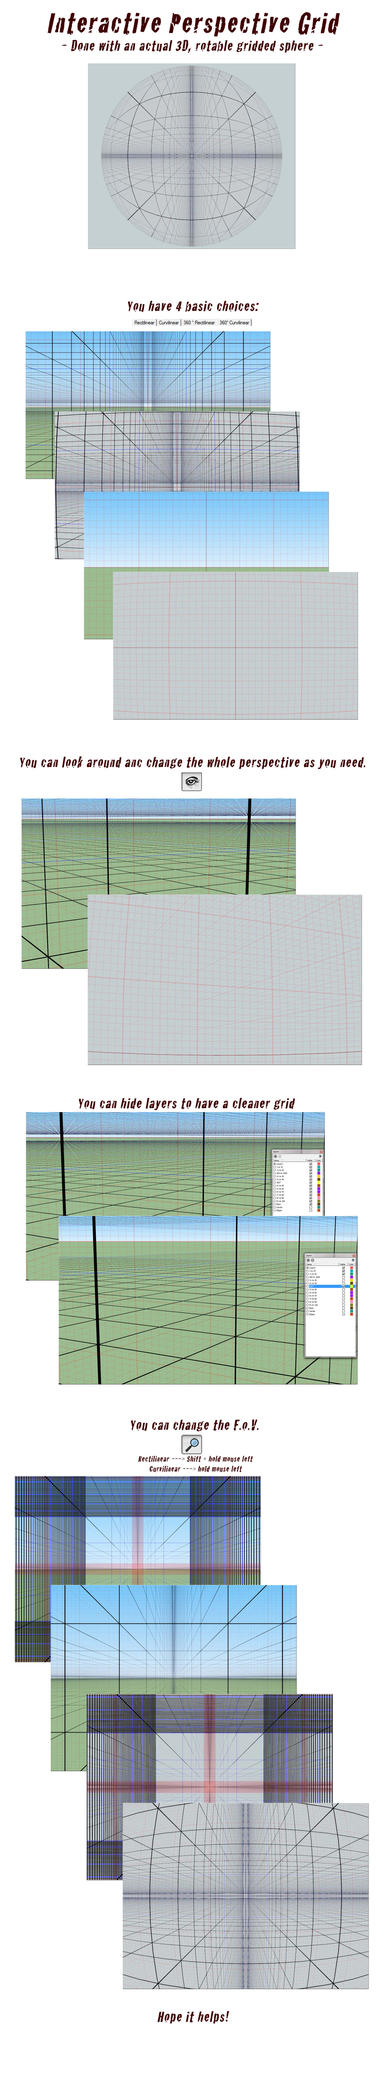 This is a 3D interactive perspective grid, done in Sketchup